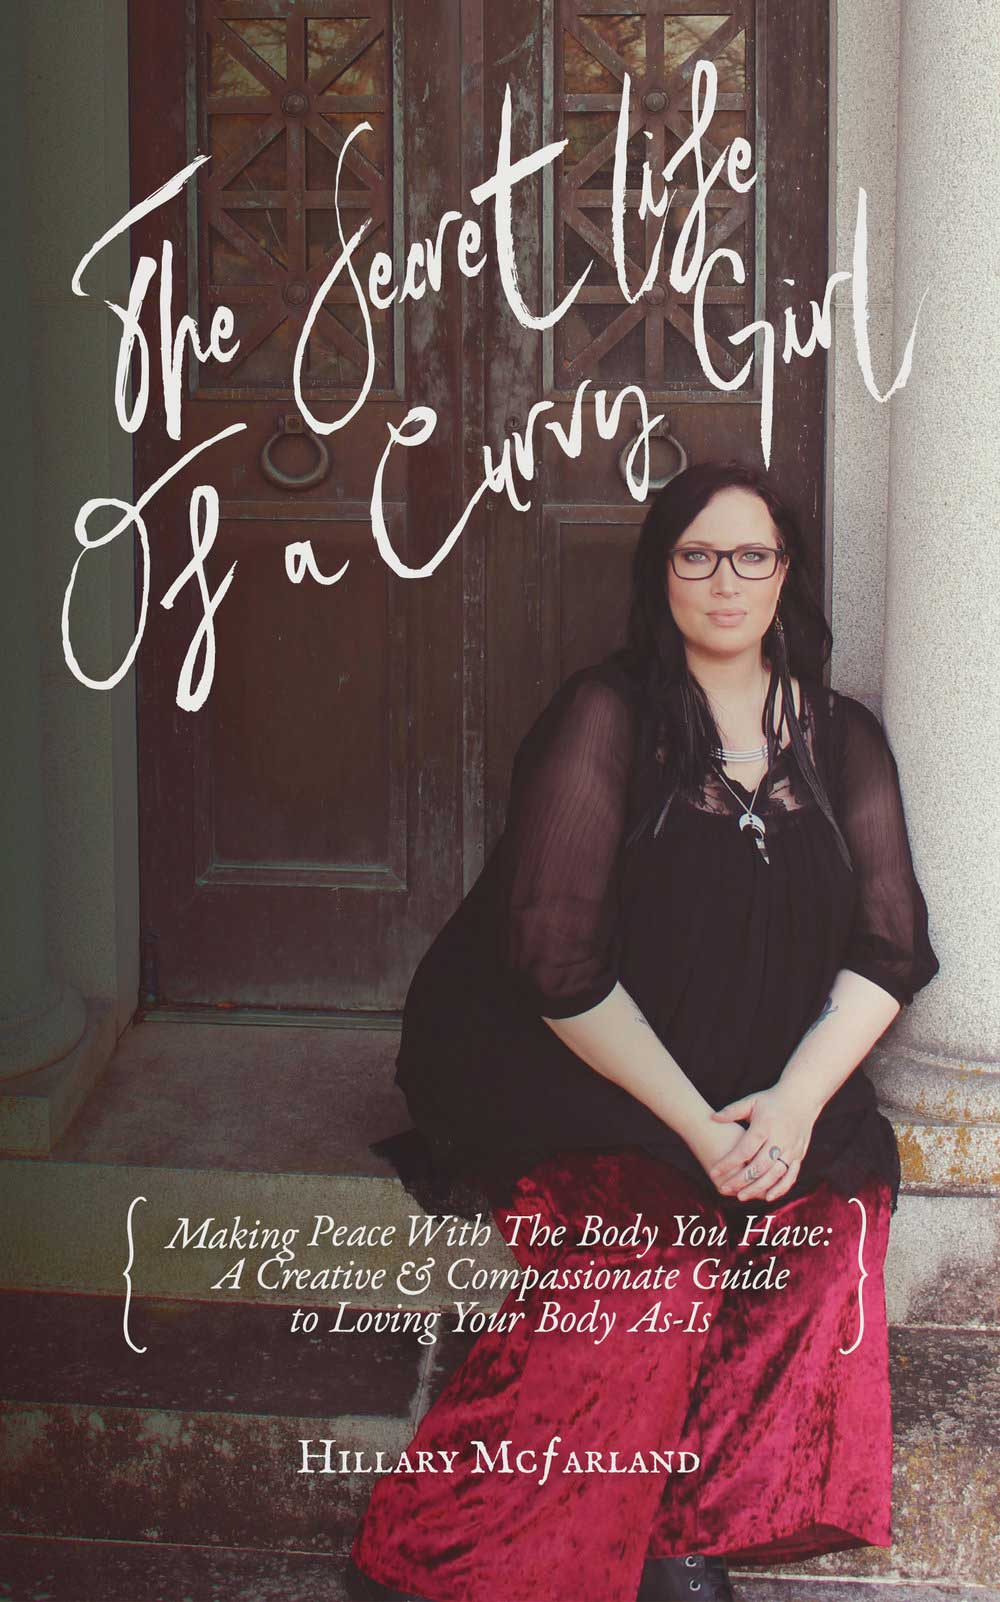 The Secret Life of a Curvy Girl is a candid memoir of grace and faith and body love. It contains raw and revealing stories from my lifelong struggle with weight, wisdom from Scripture to help heal damaging beliefs, and unique creative assignments and journaling prompts to support your healing.